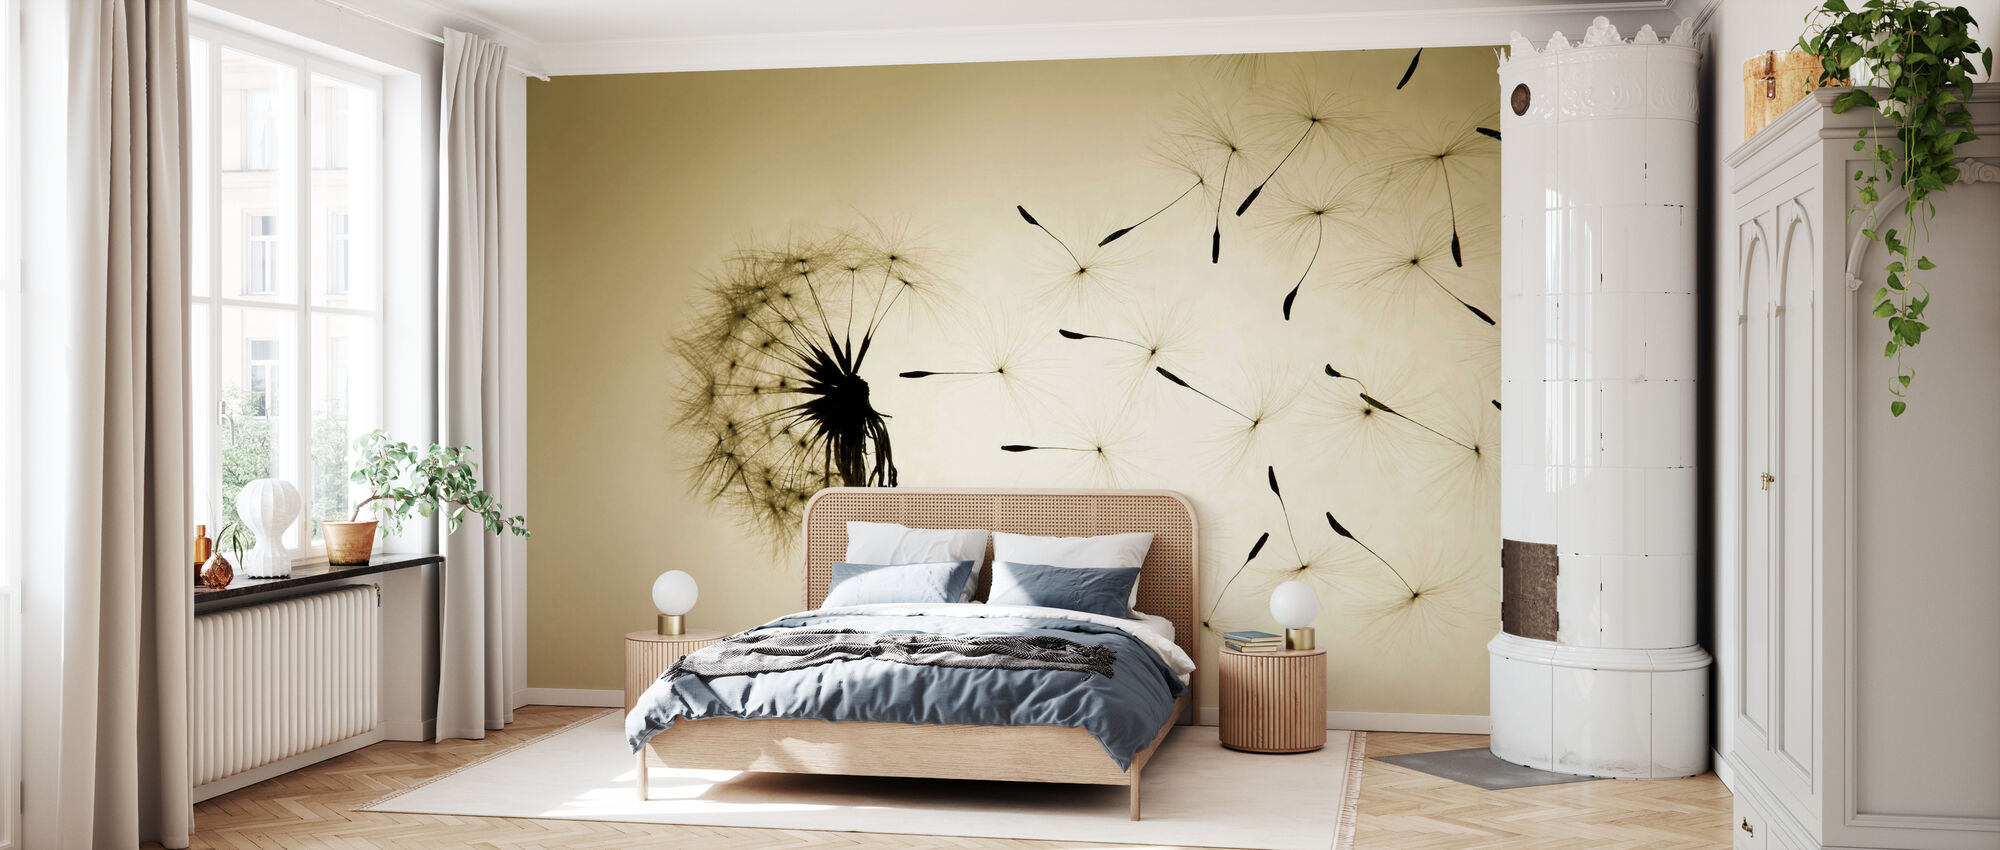 Dandelion - Wallpaper - Bedroom